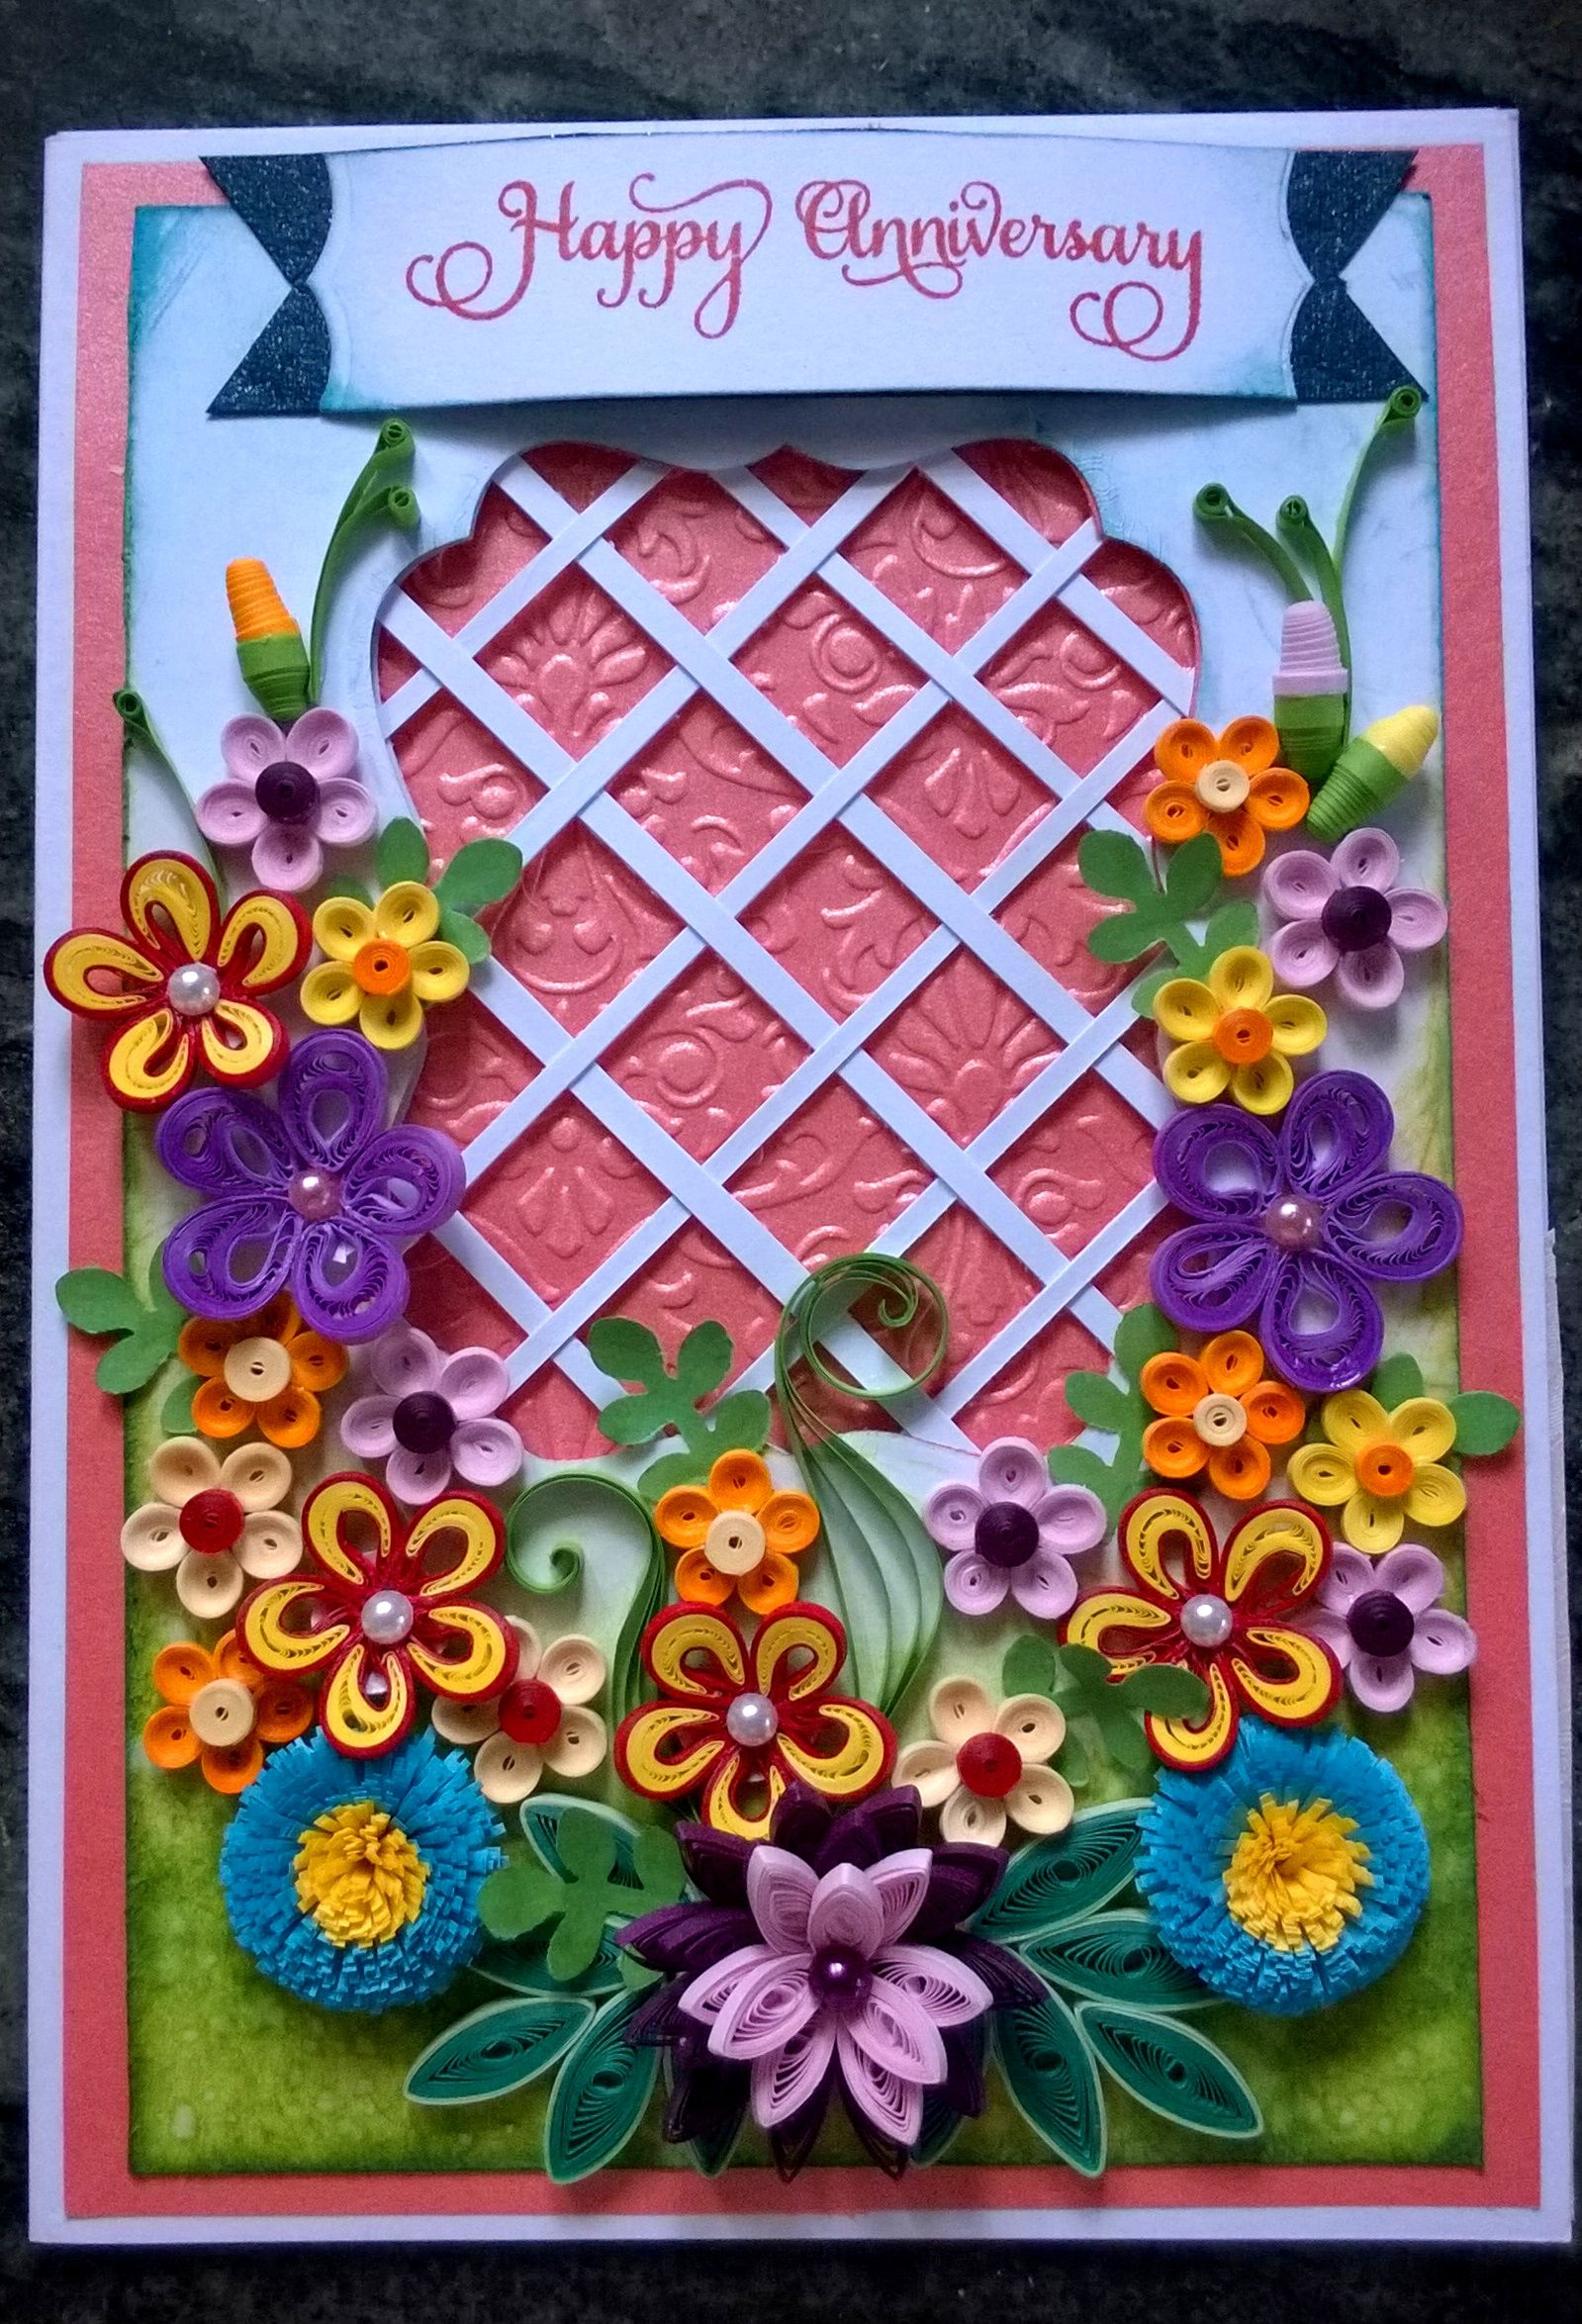 Another trellis card for 25th anniversary